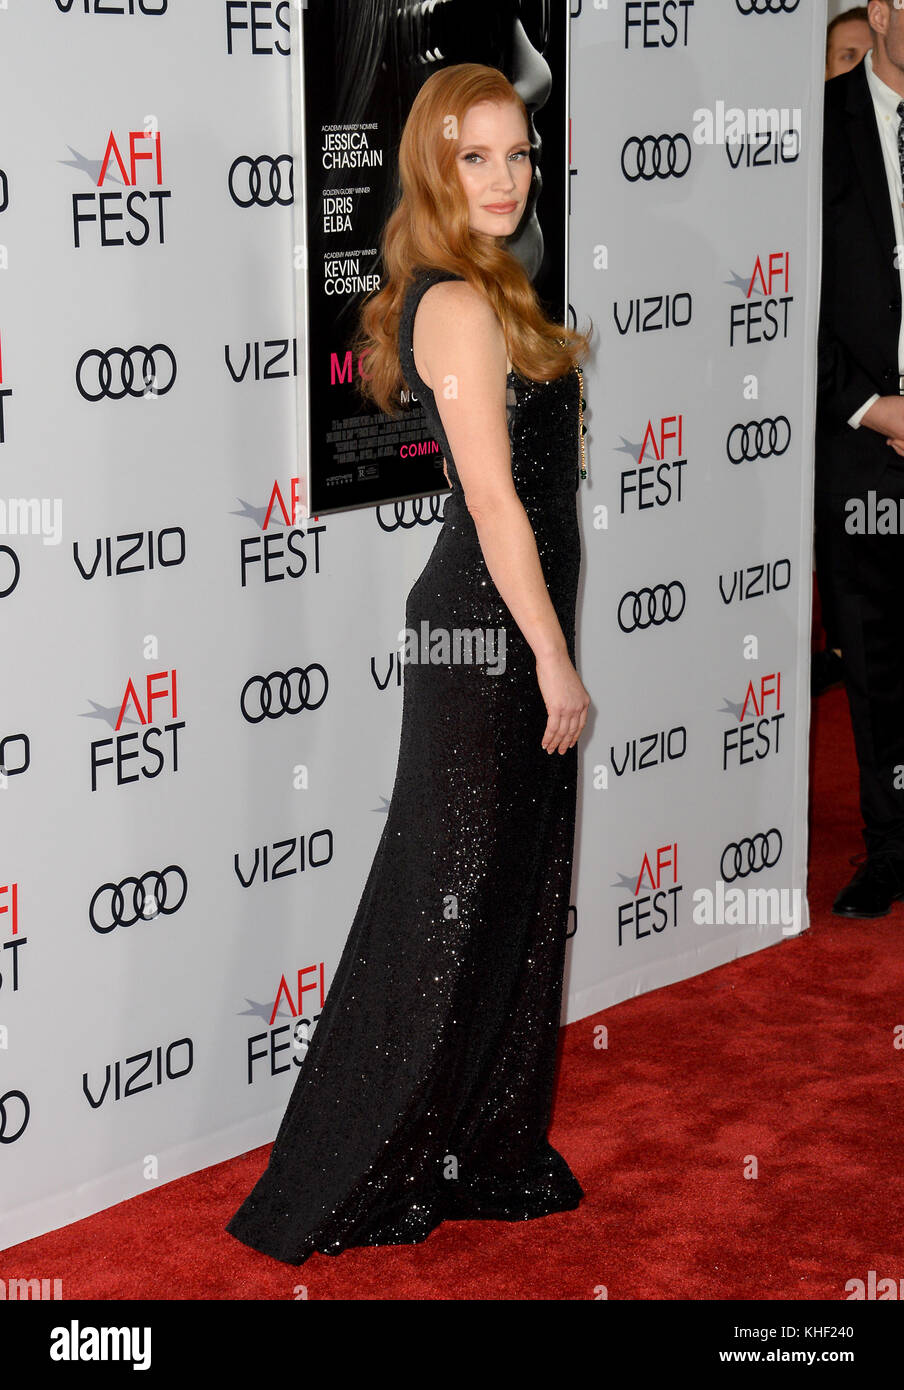 Los Angeles, USA. 16th Nov, 2017. LOS ANGELES, CA. November 16, 2017: Jessica Chastain at the AFI Fest 2017 Closing - Stock Image